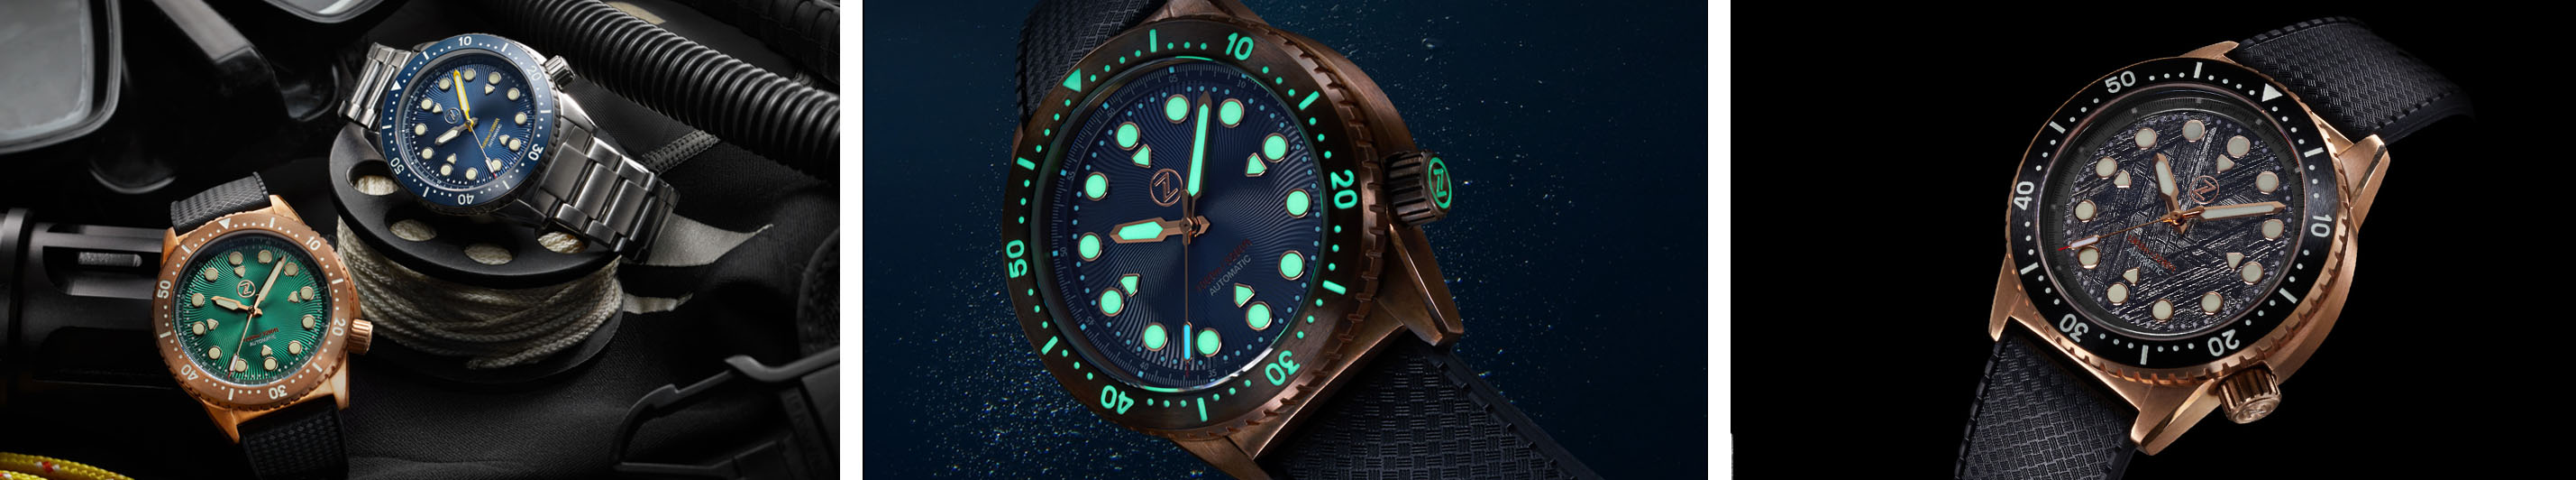 Zelos Great White 1000 m Dive watch banner